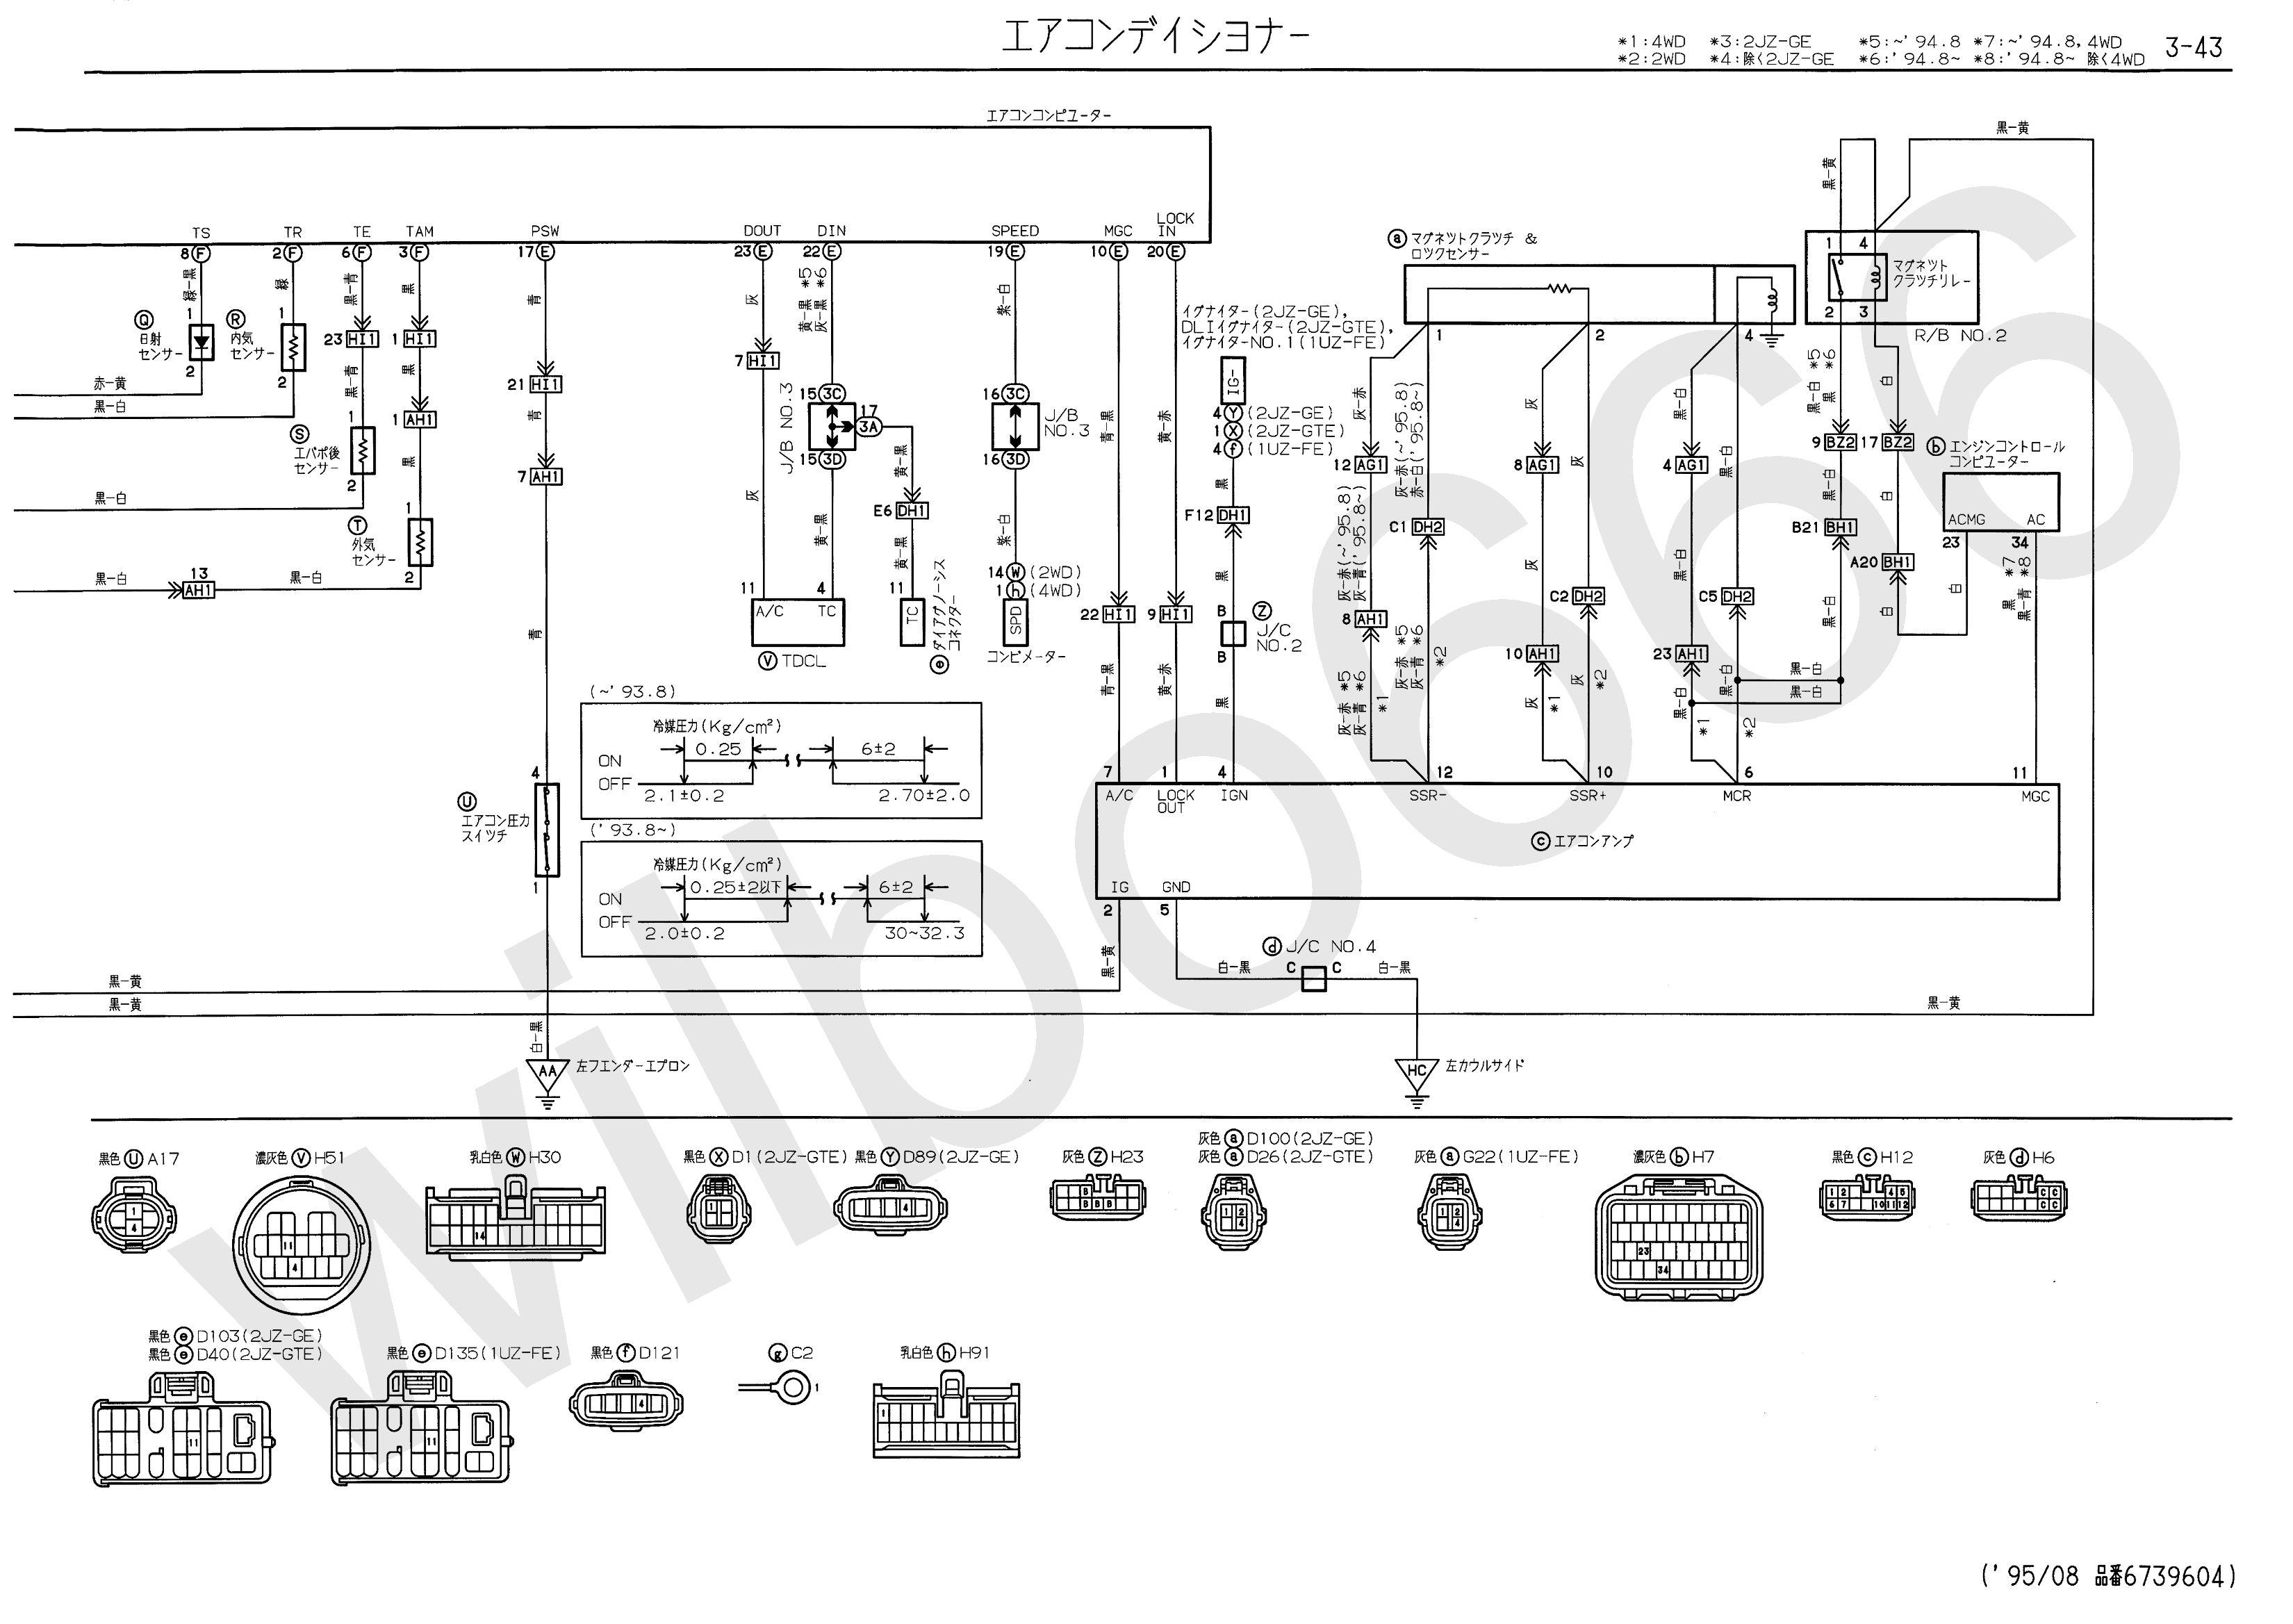 01 Toyota Camry Electrical Wiring Diagram Library 2001 Harness Ignition Igniter Get Free